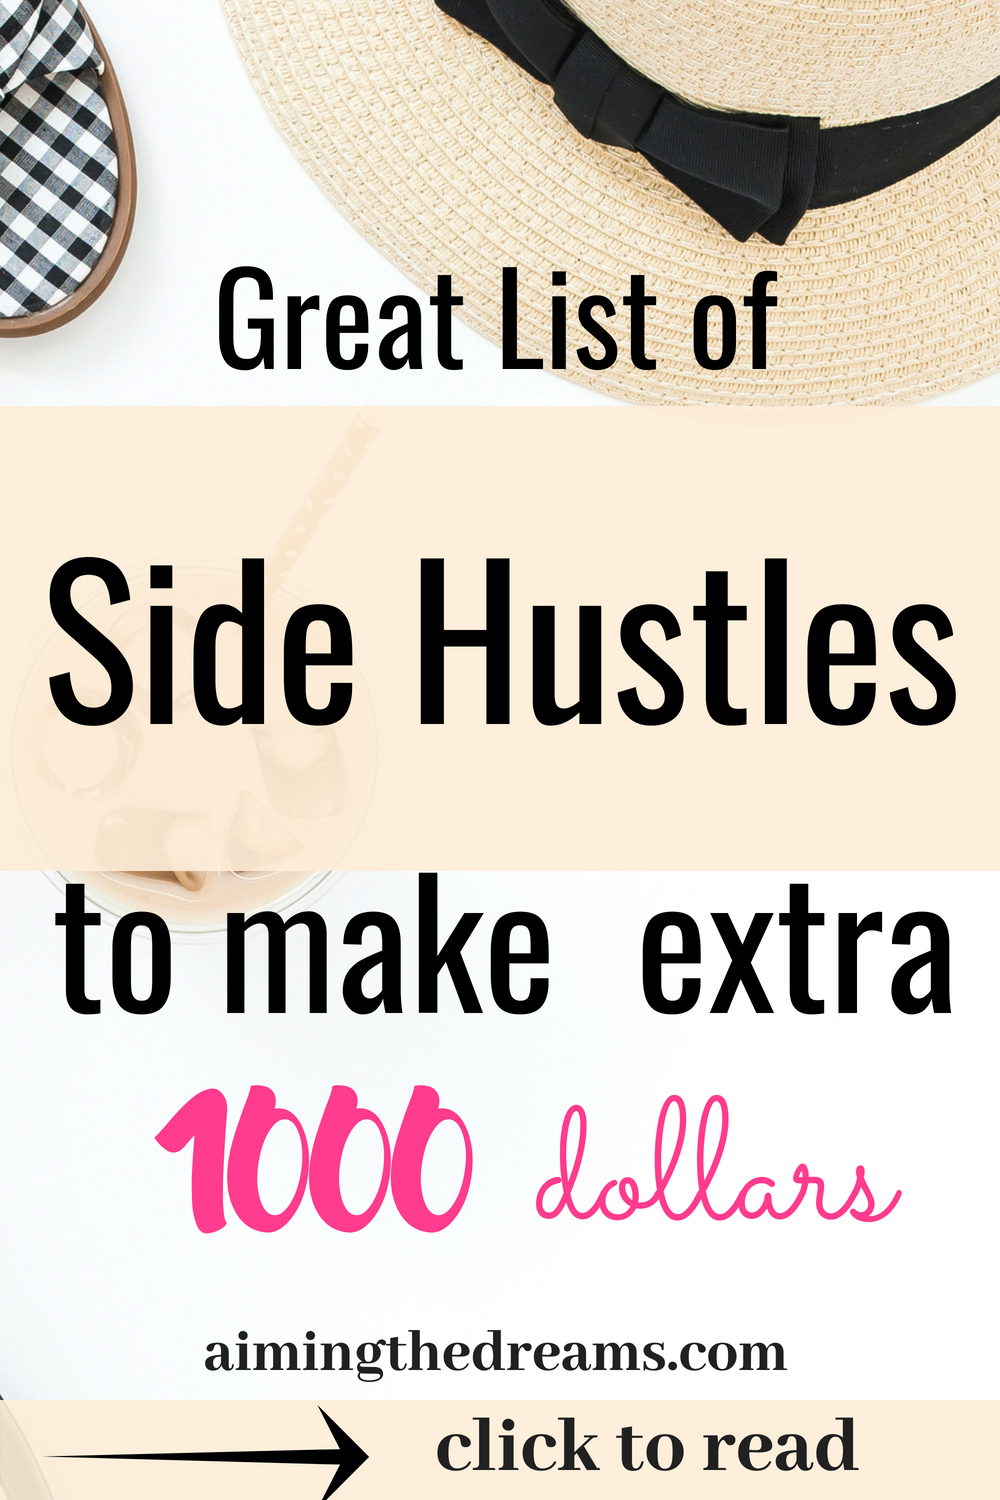 #List of #side #hustles to #earn #passive #income from home. Click to read